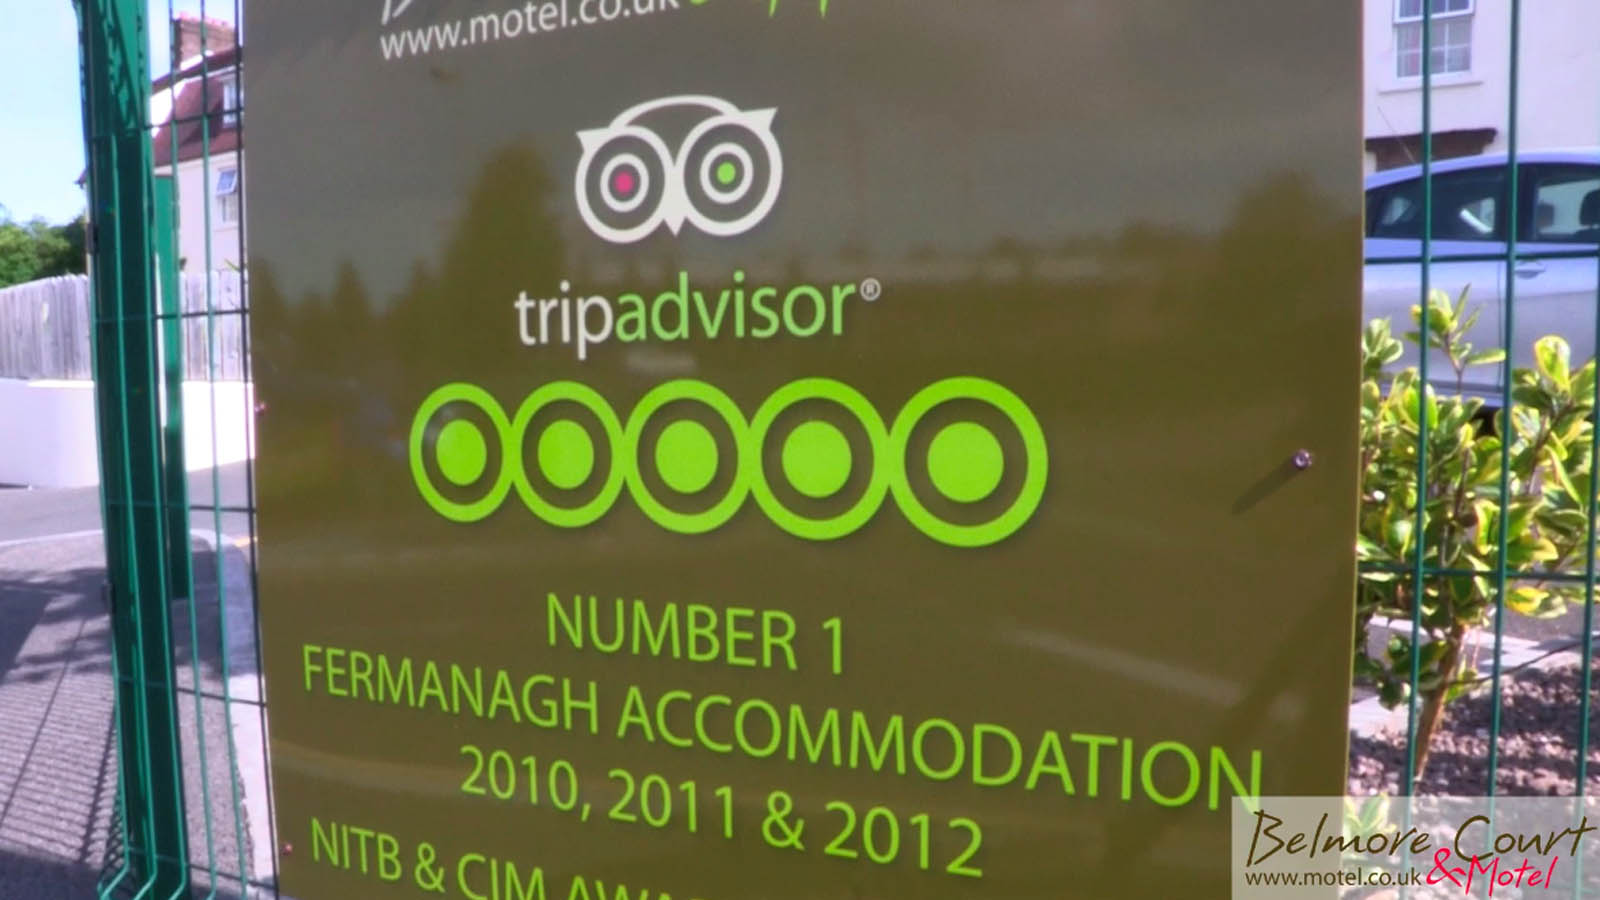 Hotel video production portfolio - Tripadvisor certification from video for Belmont Court Hotel by Bout Yeh video production Belfast, N. Ireland